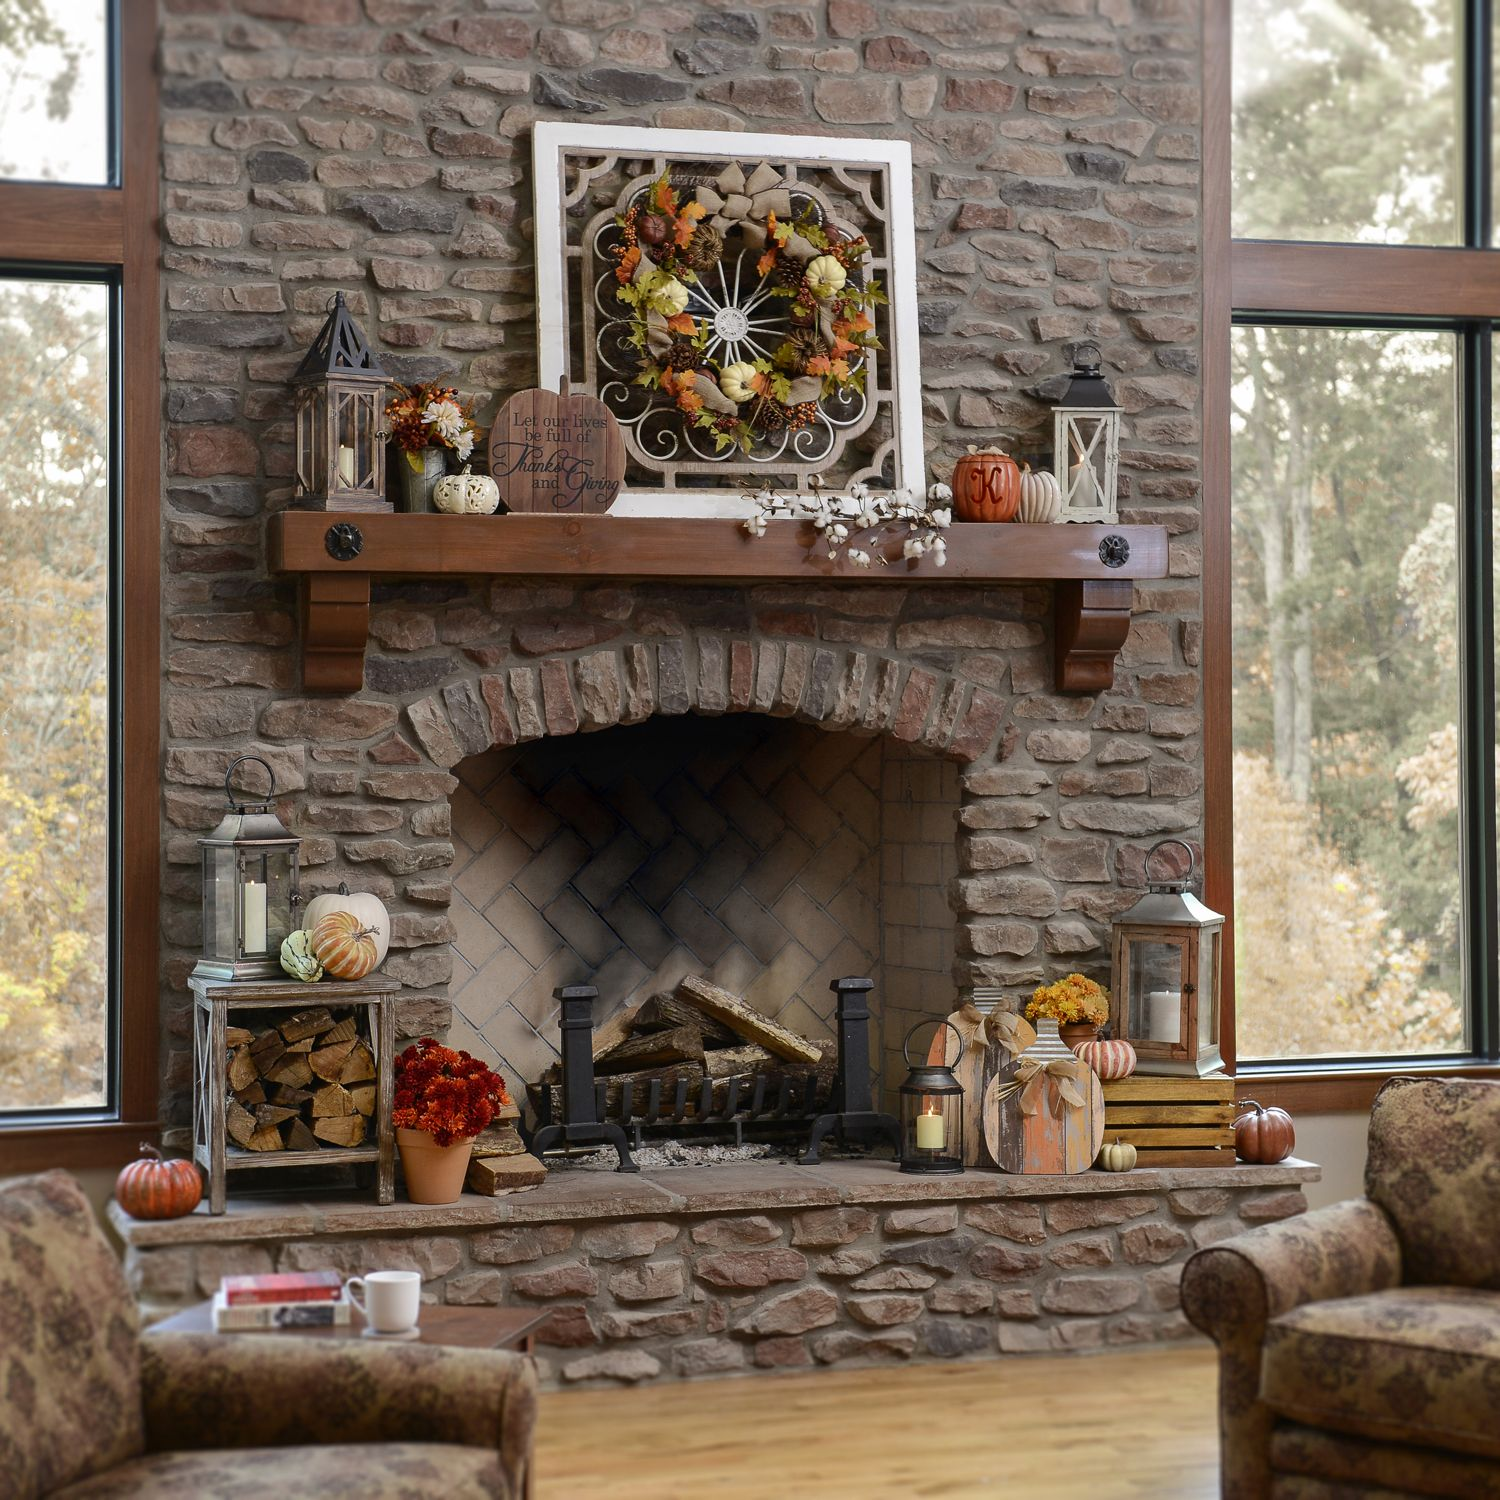 Bring The Spirit Of Fall To Your Home With Our Harvest